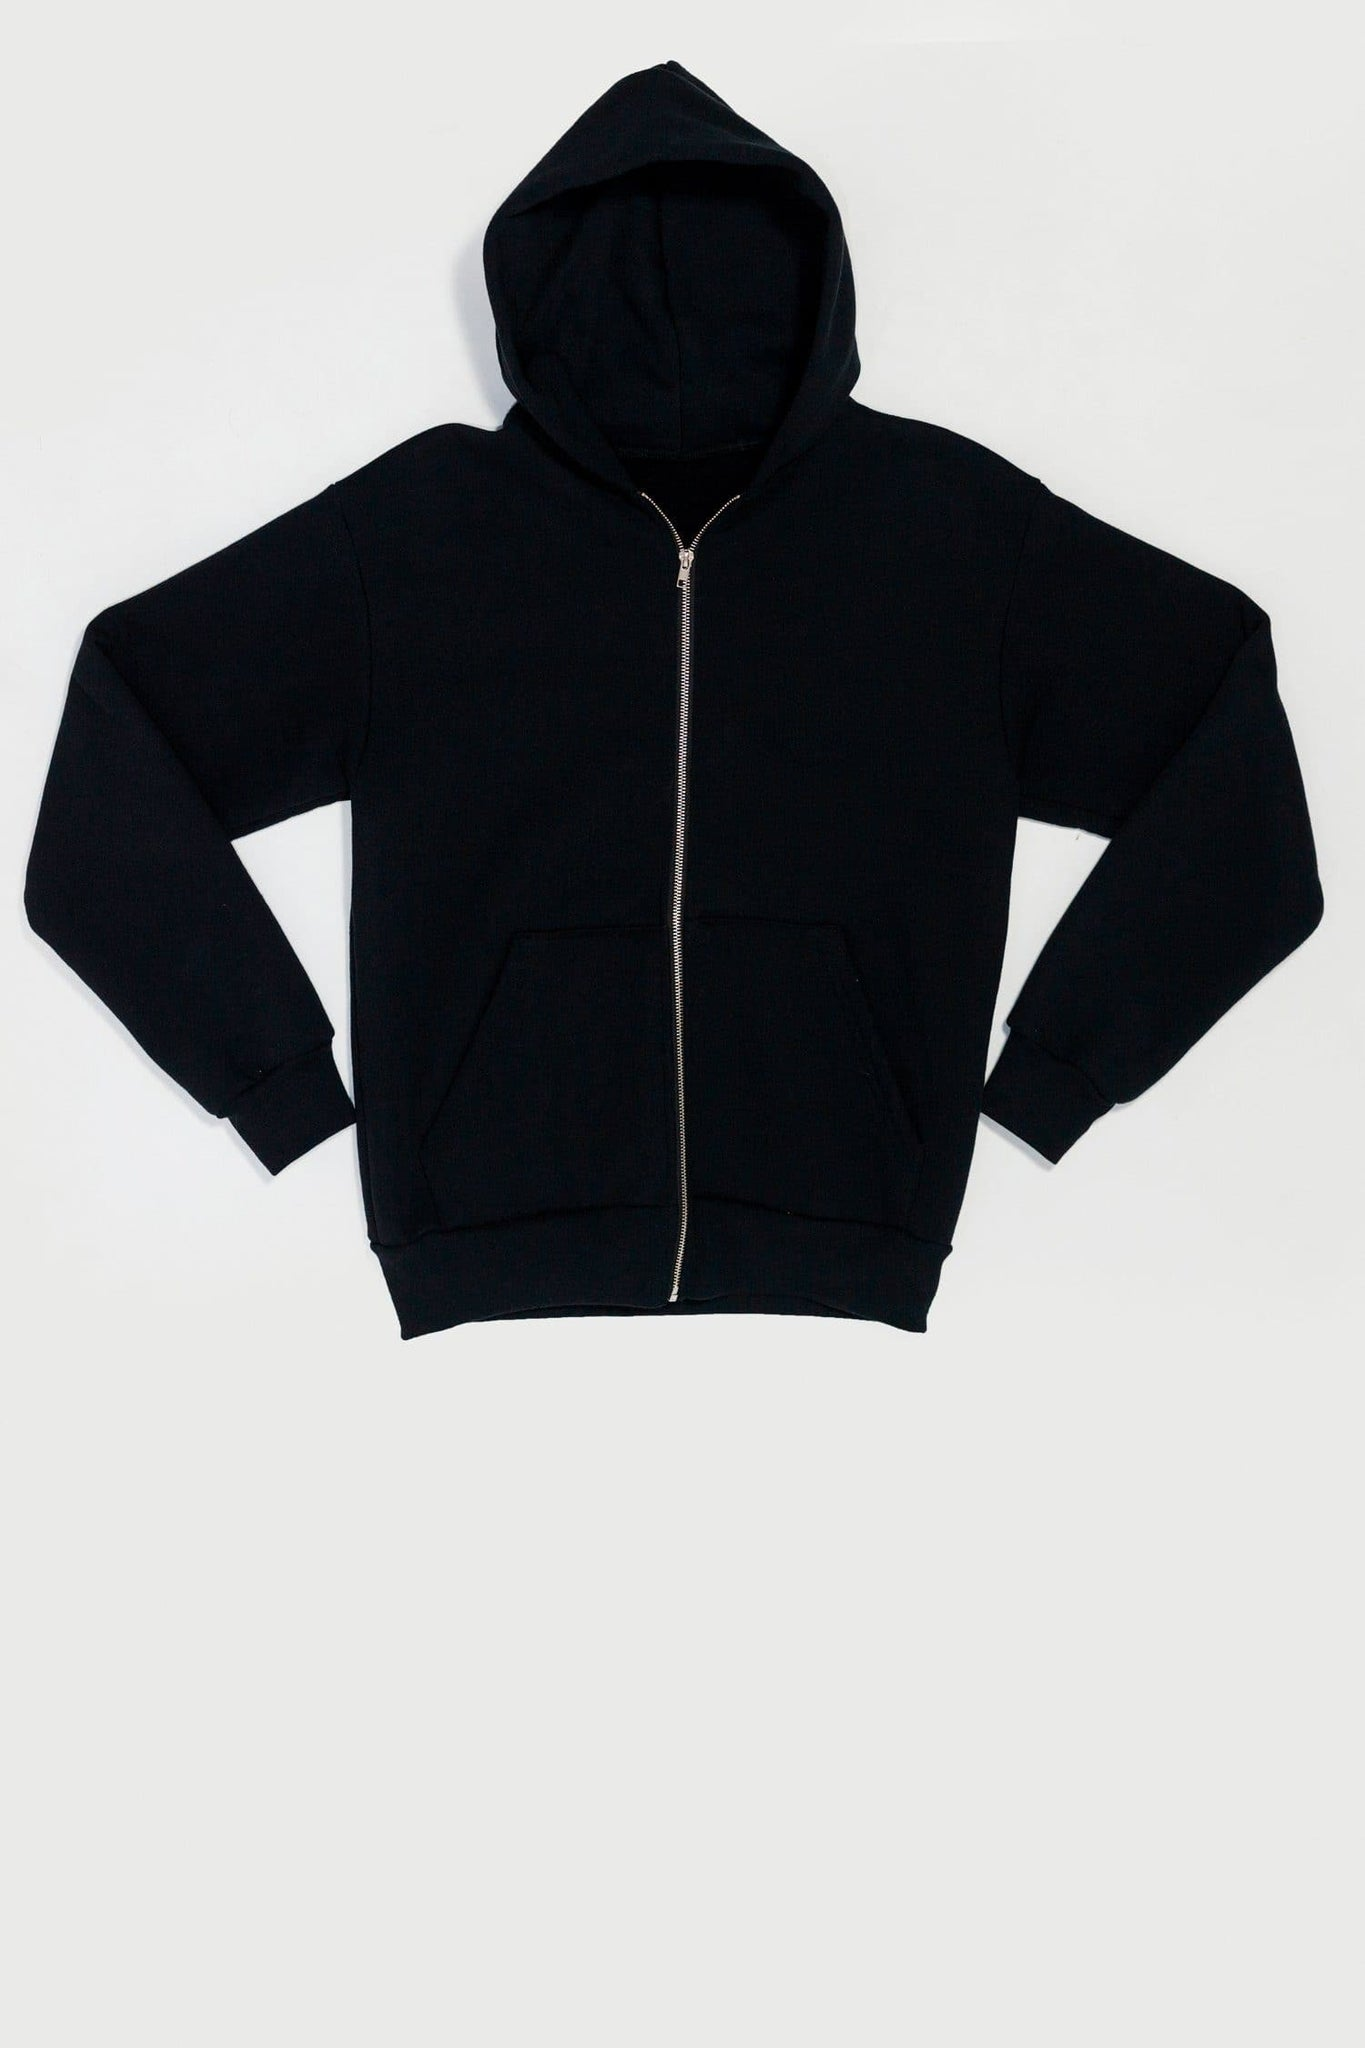 HF-10 - 14oz. Heavy Fleece Zip Up Hooded Sweatshirt